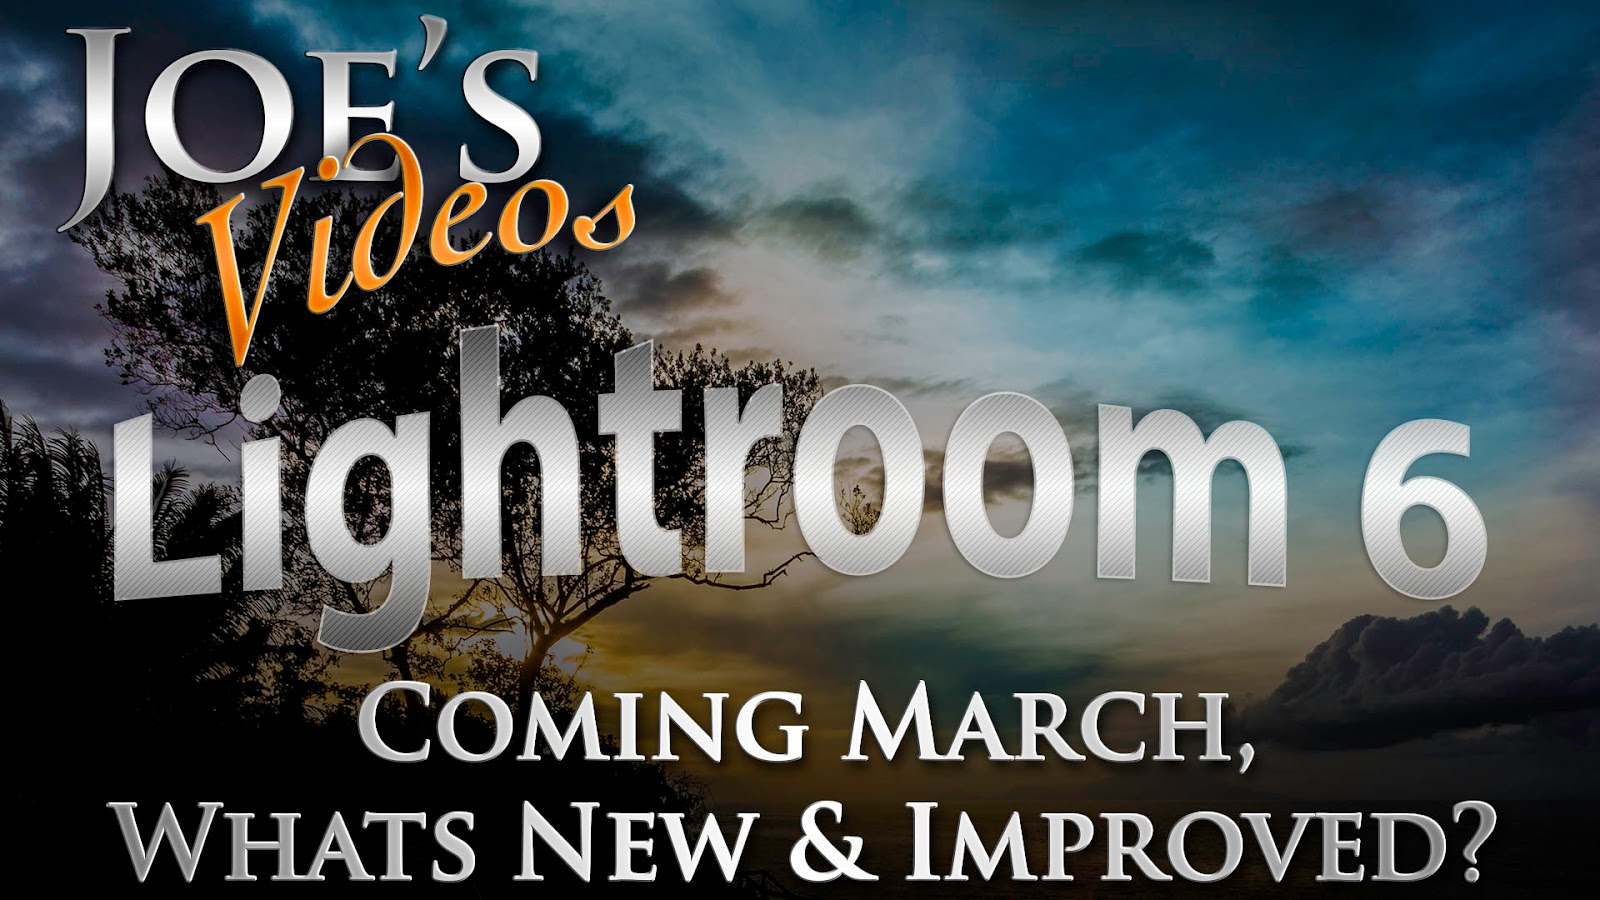 Adobe Lightroom 6 Rumored For March, So Whats New & Improved | Joe's Videos